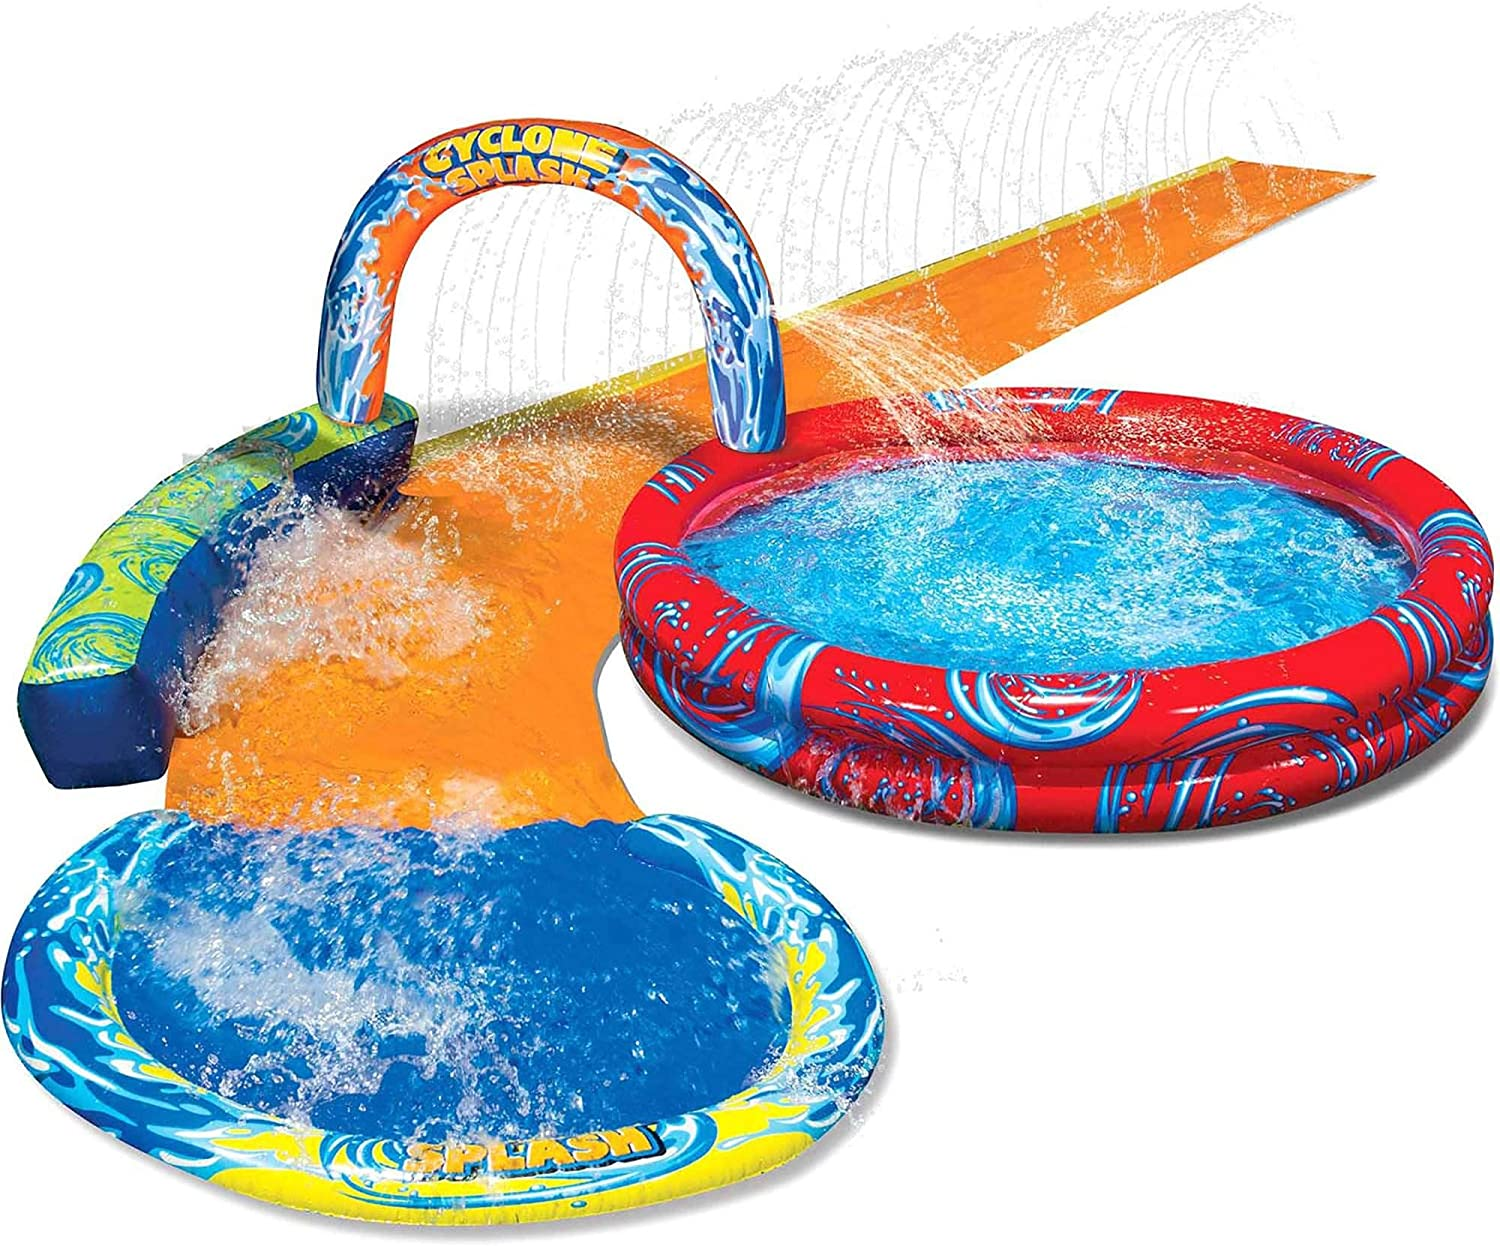 Top 10 Best Slip and Slides in 2021 Reviews